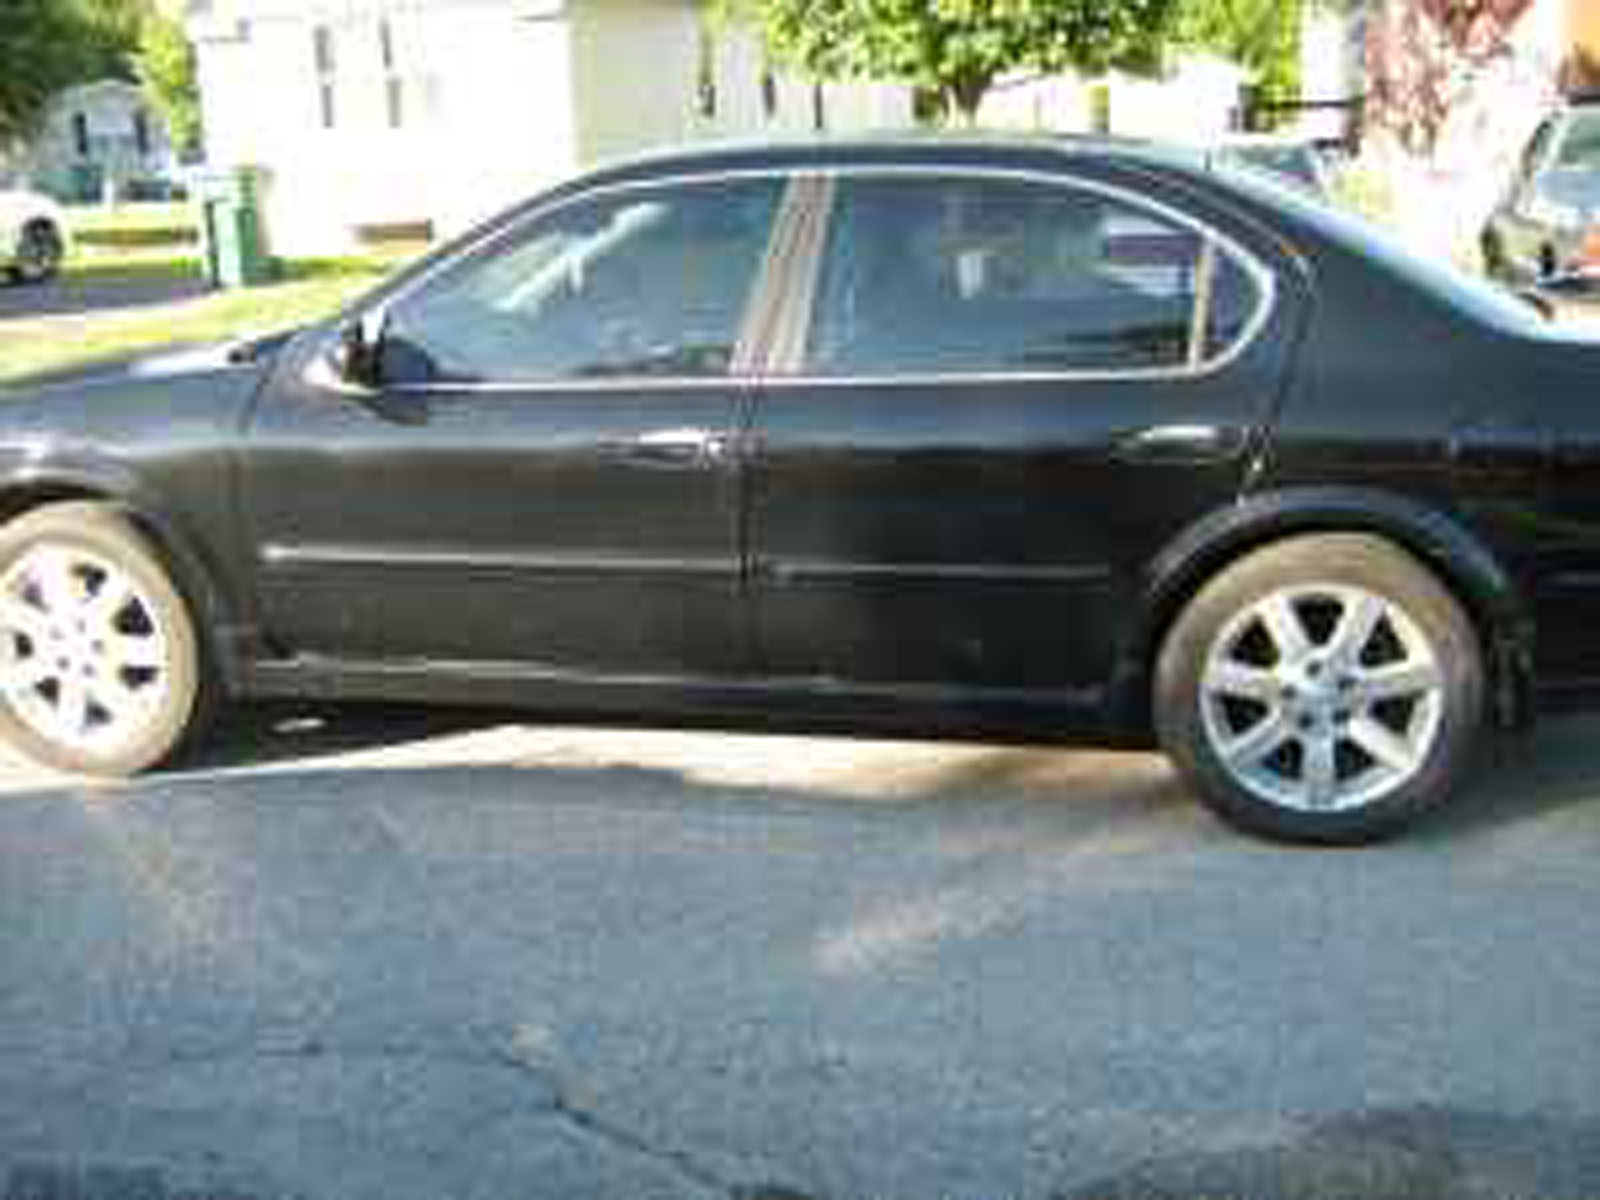 Worksheet. 2003 Nissan Maxima Maxima Knoxville Tennessee For Sale